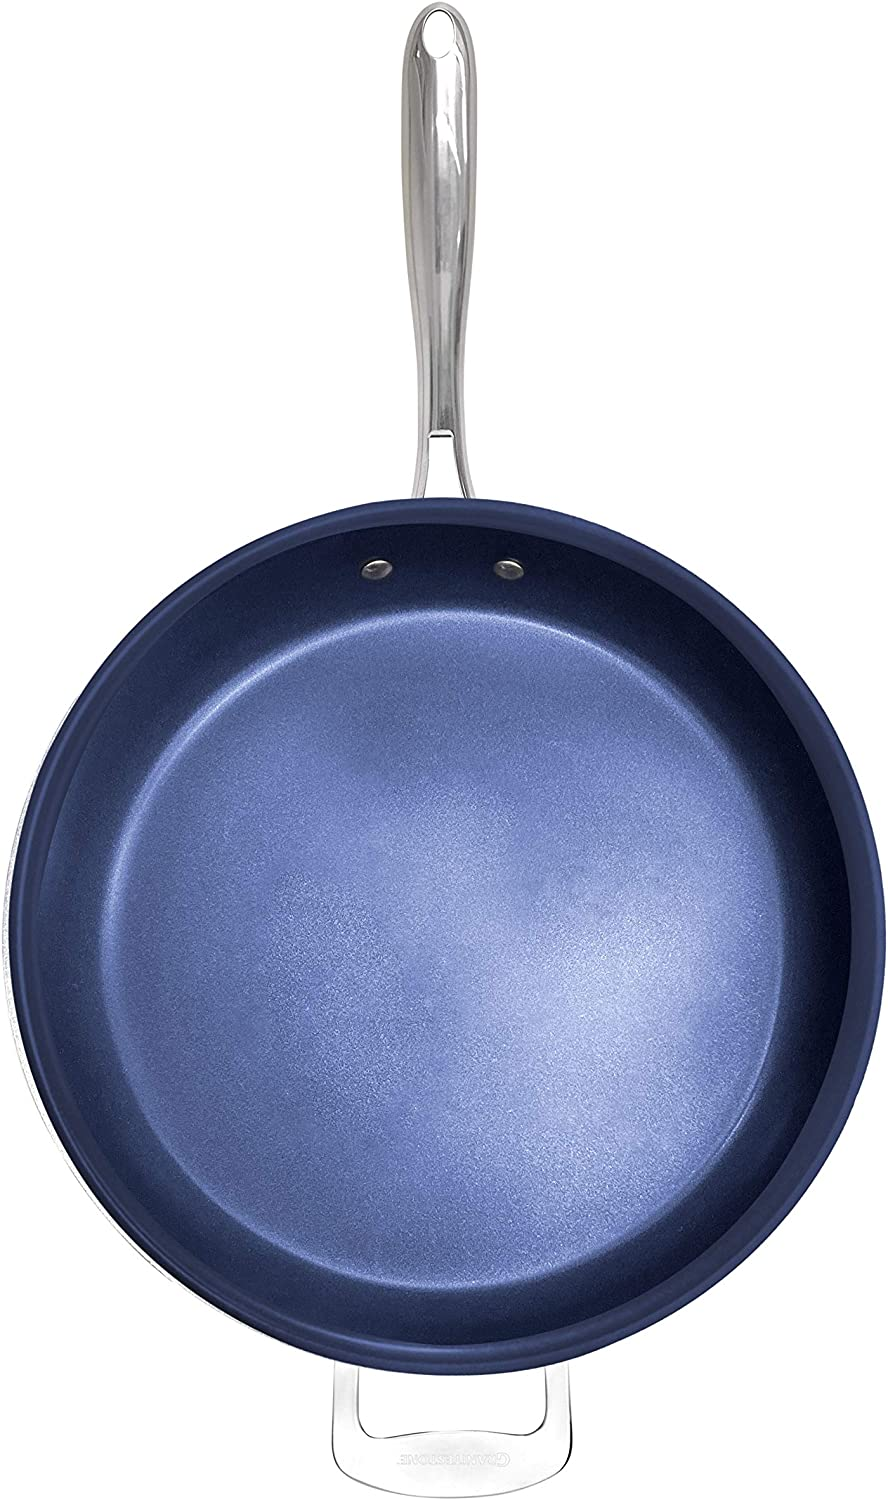 Granite Stone Diamond Granite Stone Classic Blue Nonstick Frying Pan with Ultra Durable Mineral and Diamond Triple Coated Surface Oven and Dishwasher Safe 14 Family Sized Open Skillet